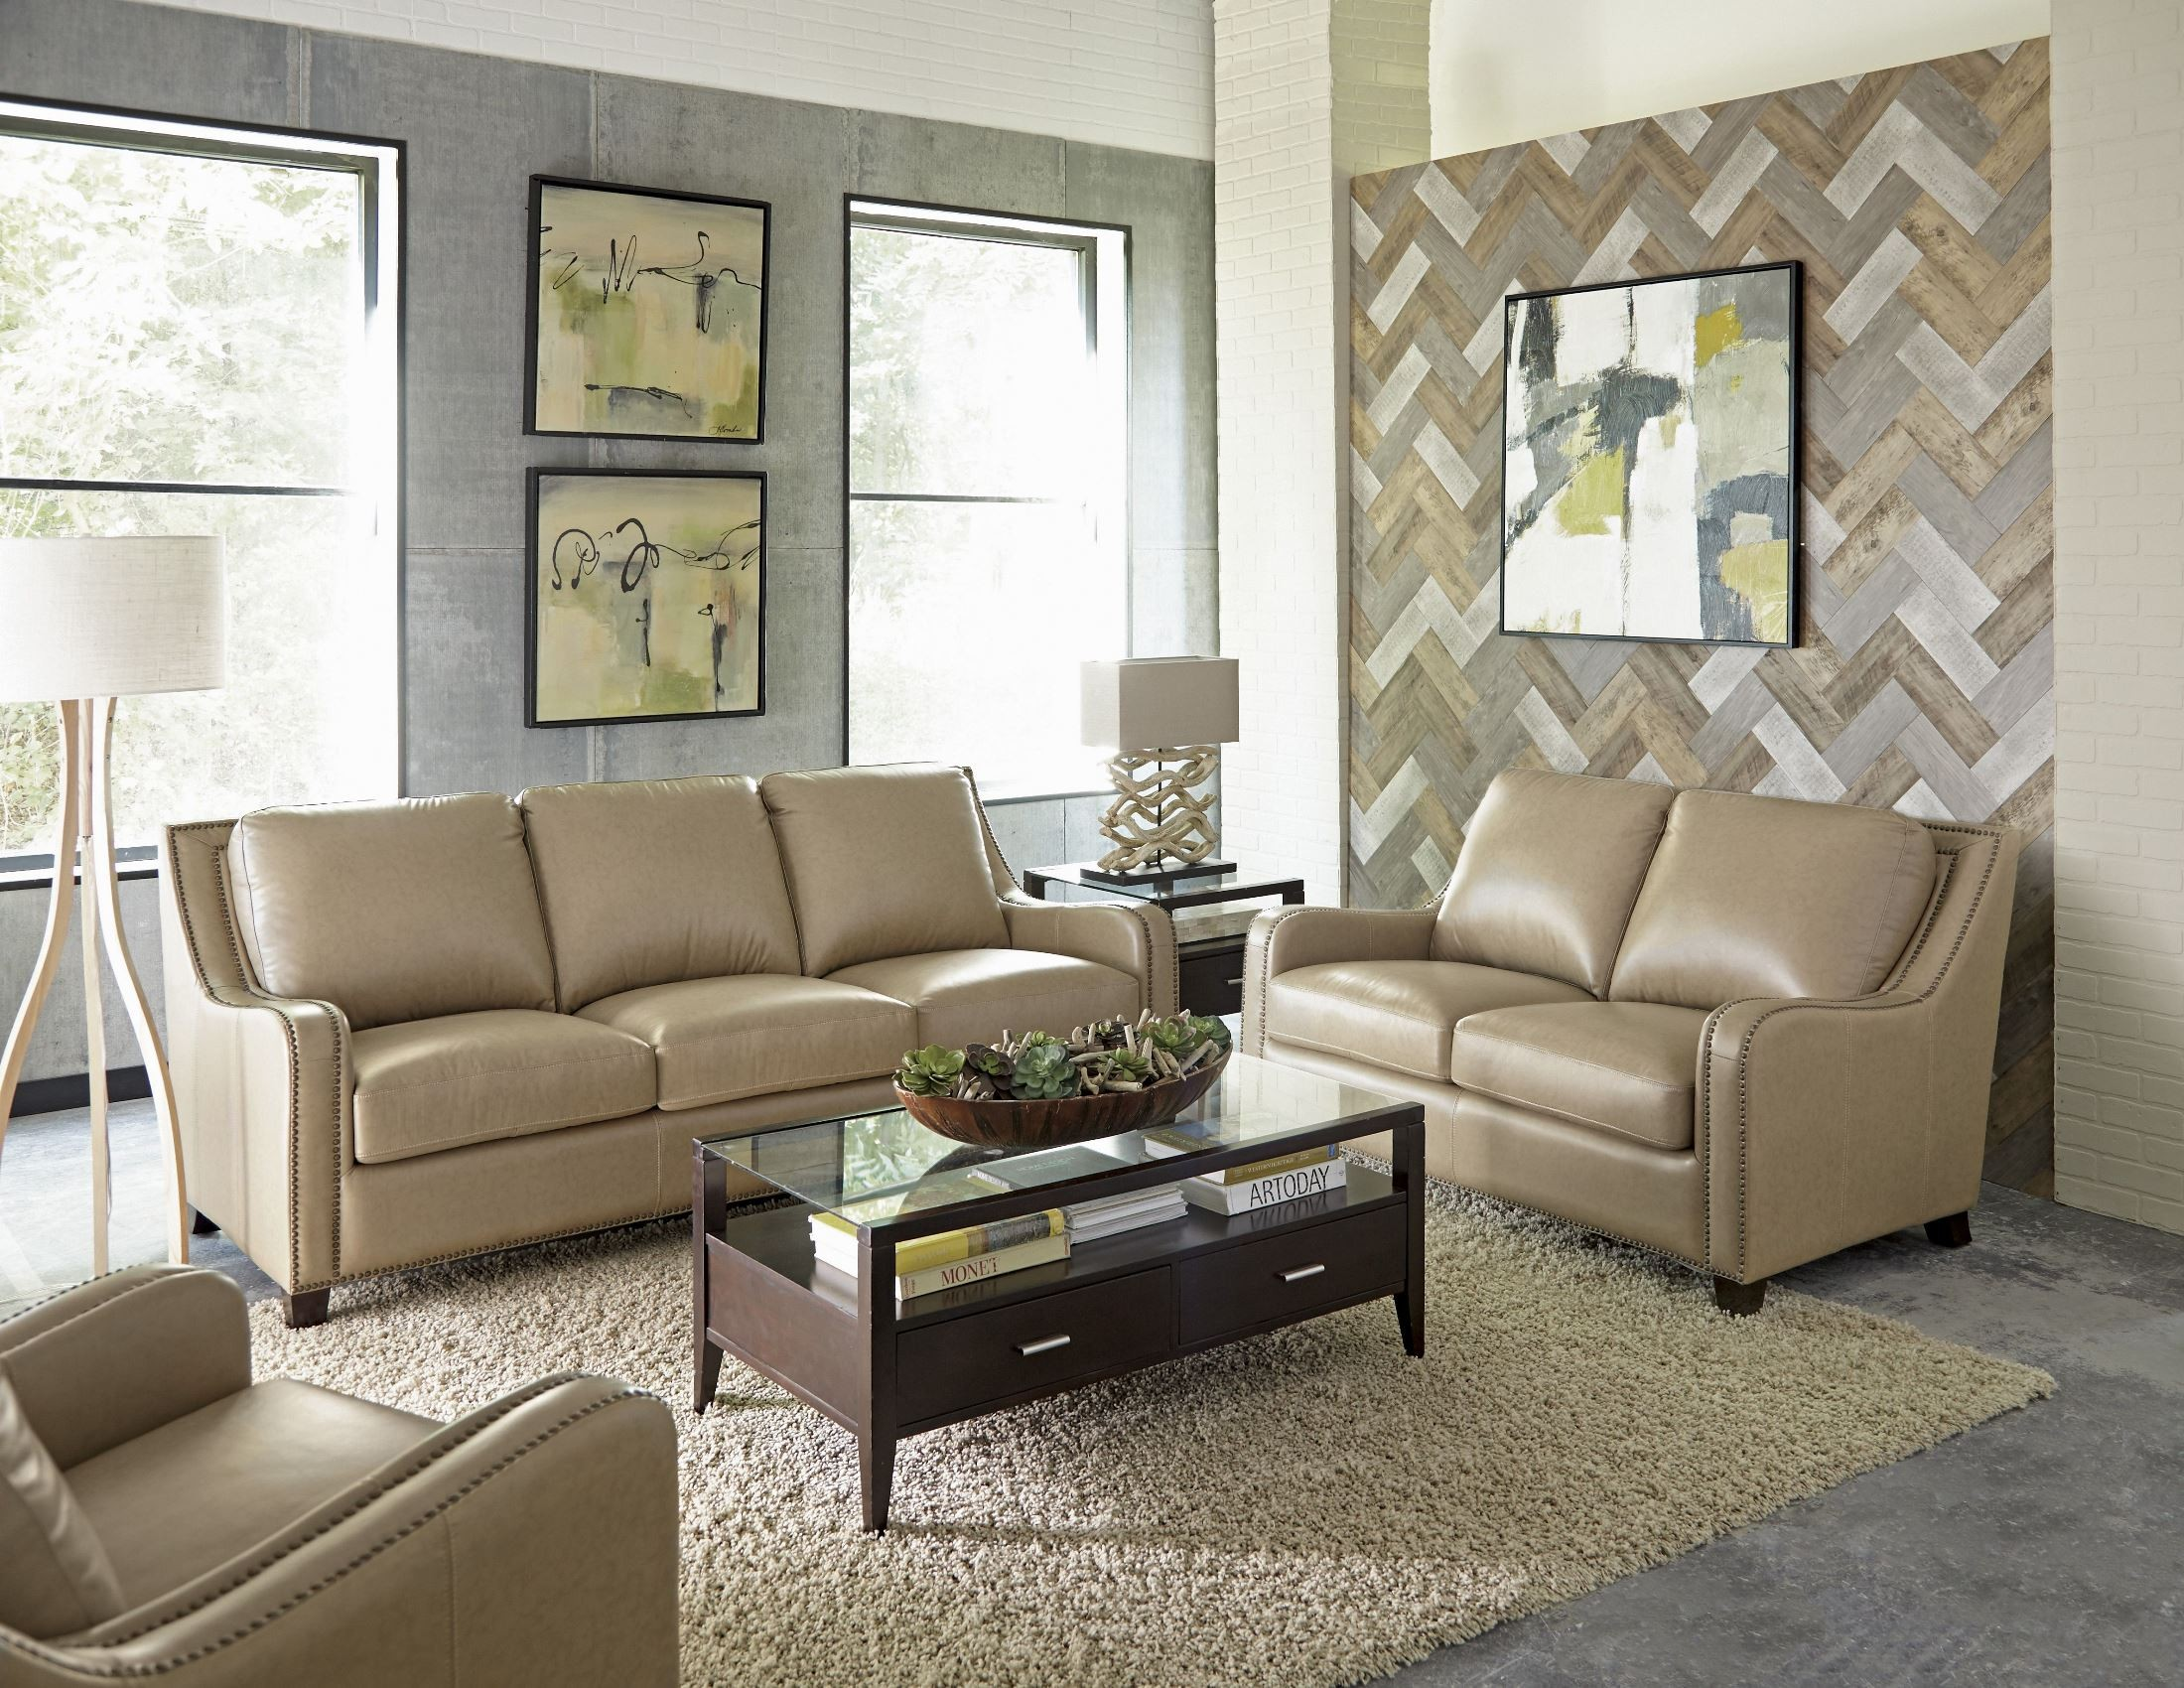 Denver Buckskin Leather Living Room Set From Lazzaro Coleman Furniture